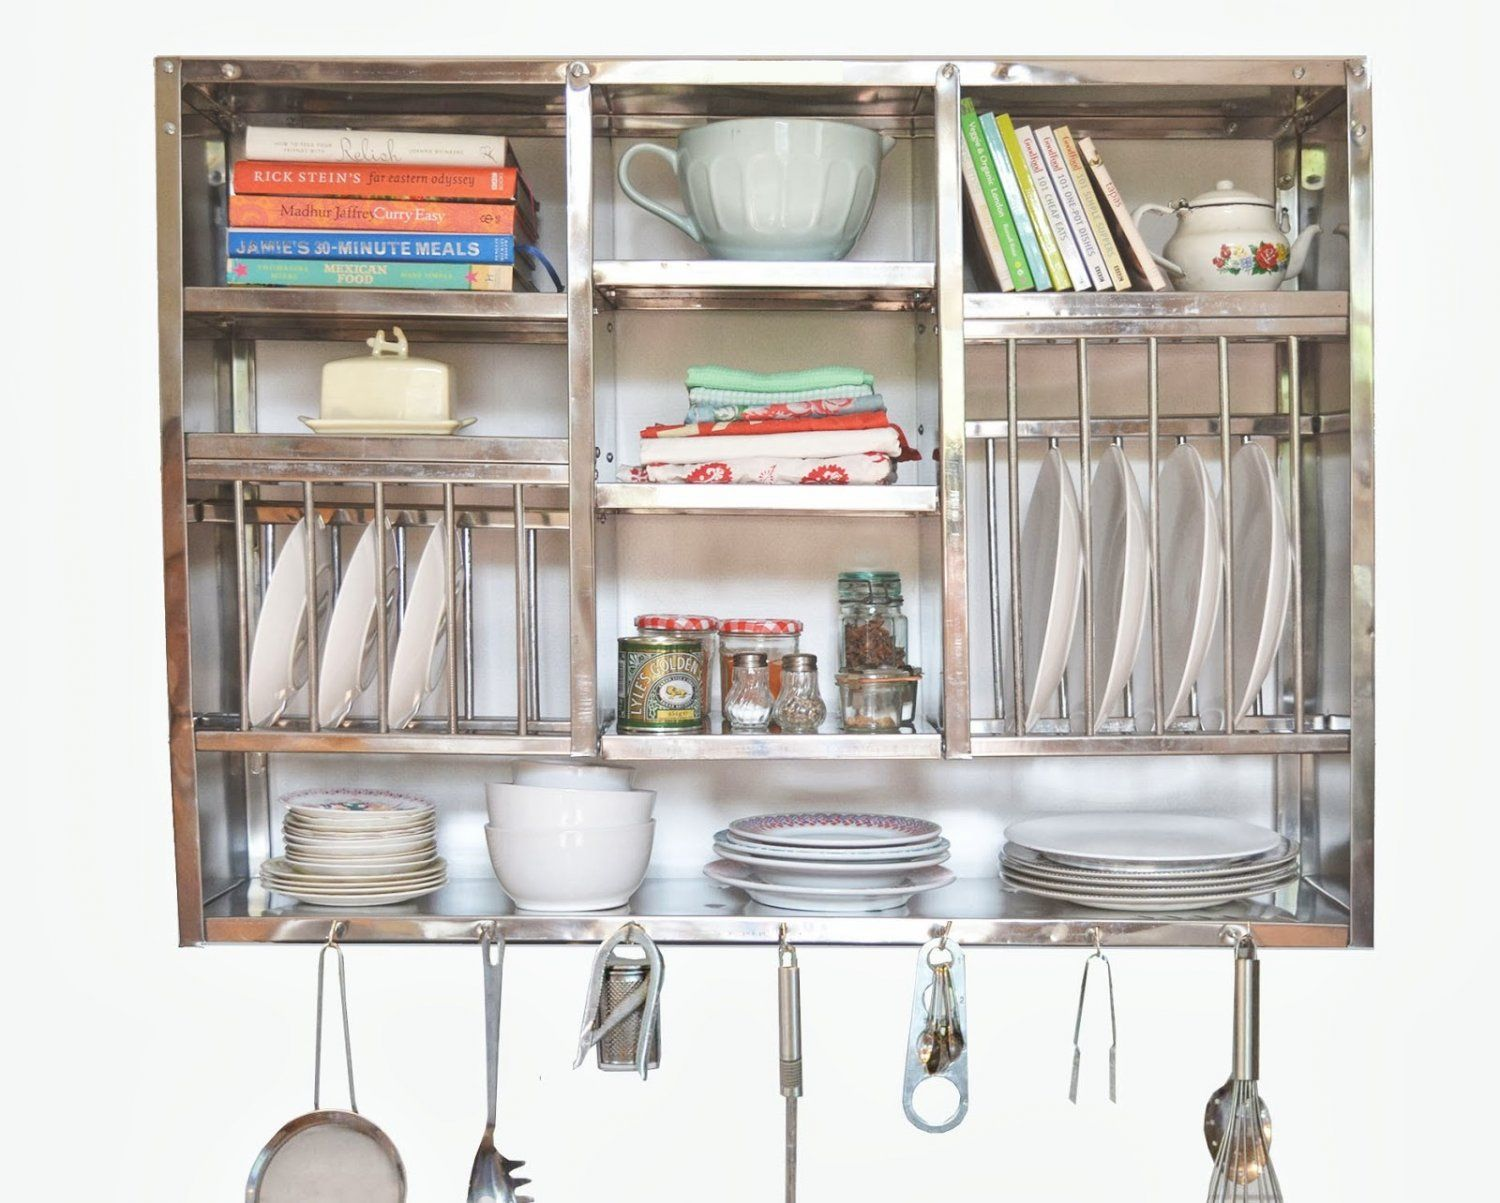 Stainless Steel Kitchen Plate Rack Wall Hanging 76x24x107 Cm Plate Rack Wall Kitchen Rack Kitchen Plate